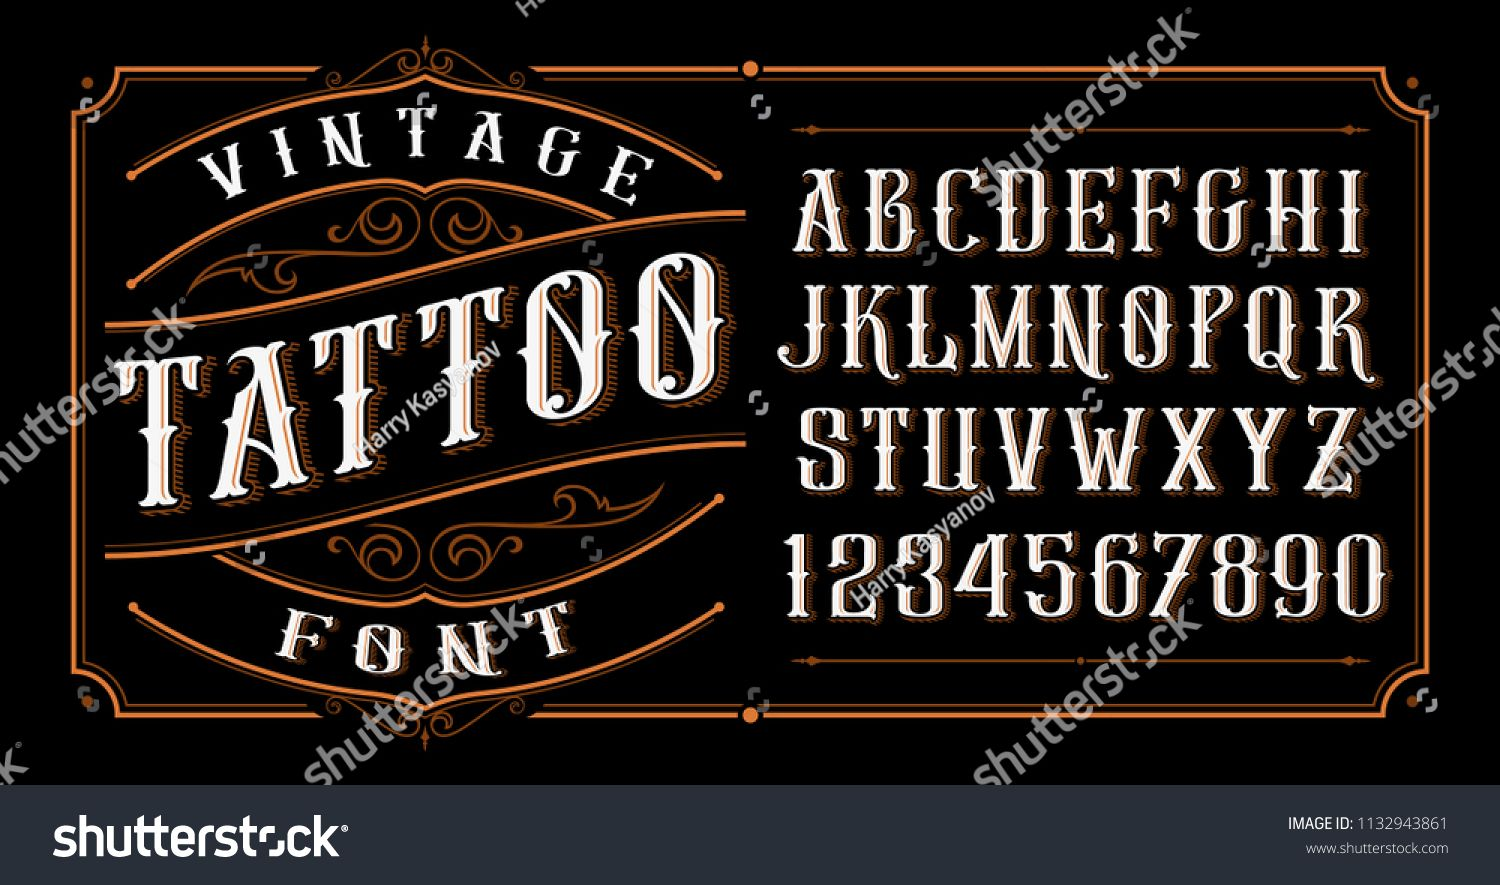 Vintage Tattoo Font Font For The Tattoo Studio Logos Alcohol Branding And Many Others In Retro Style Ad Ad F In 2020 Tattoo Font Vintage Tattoo Tattoo Studio